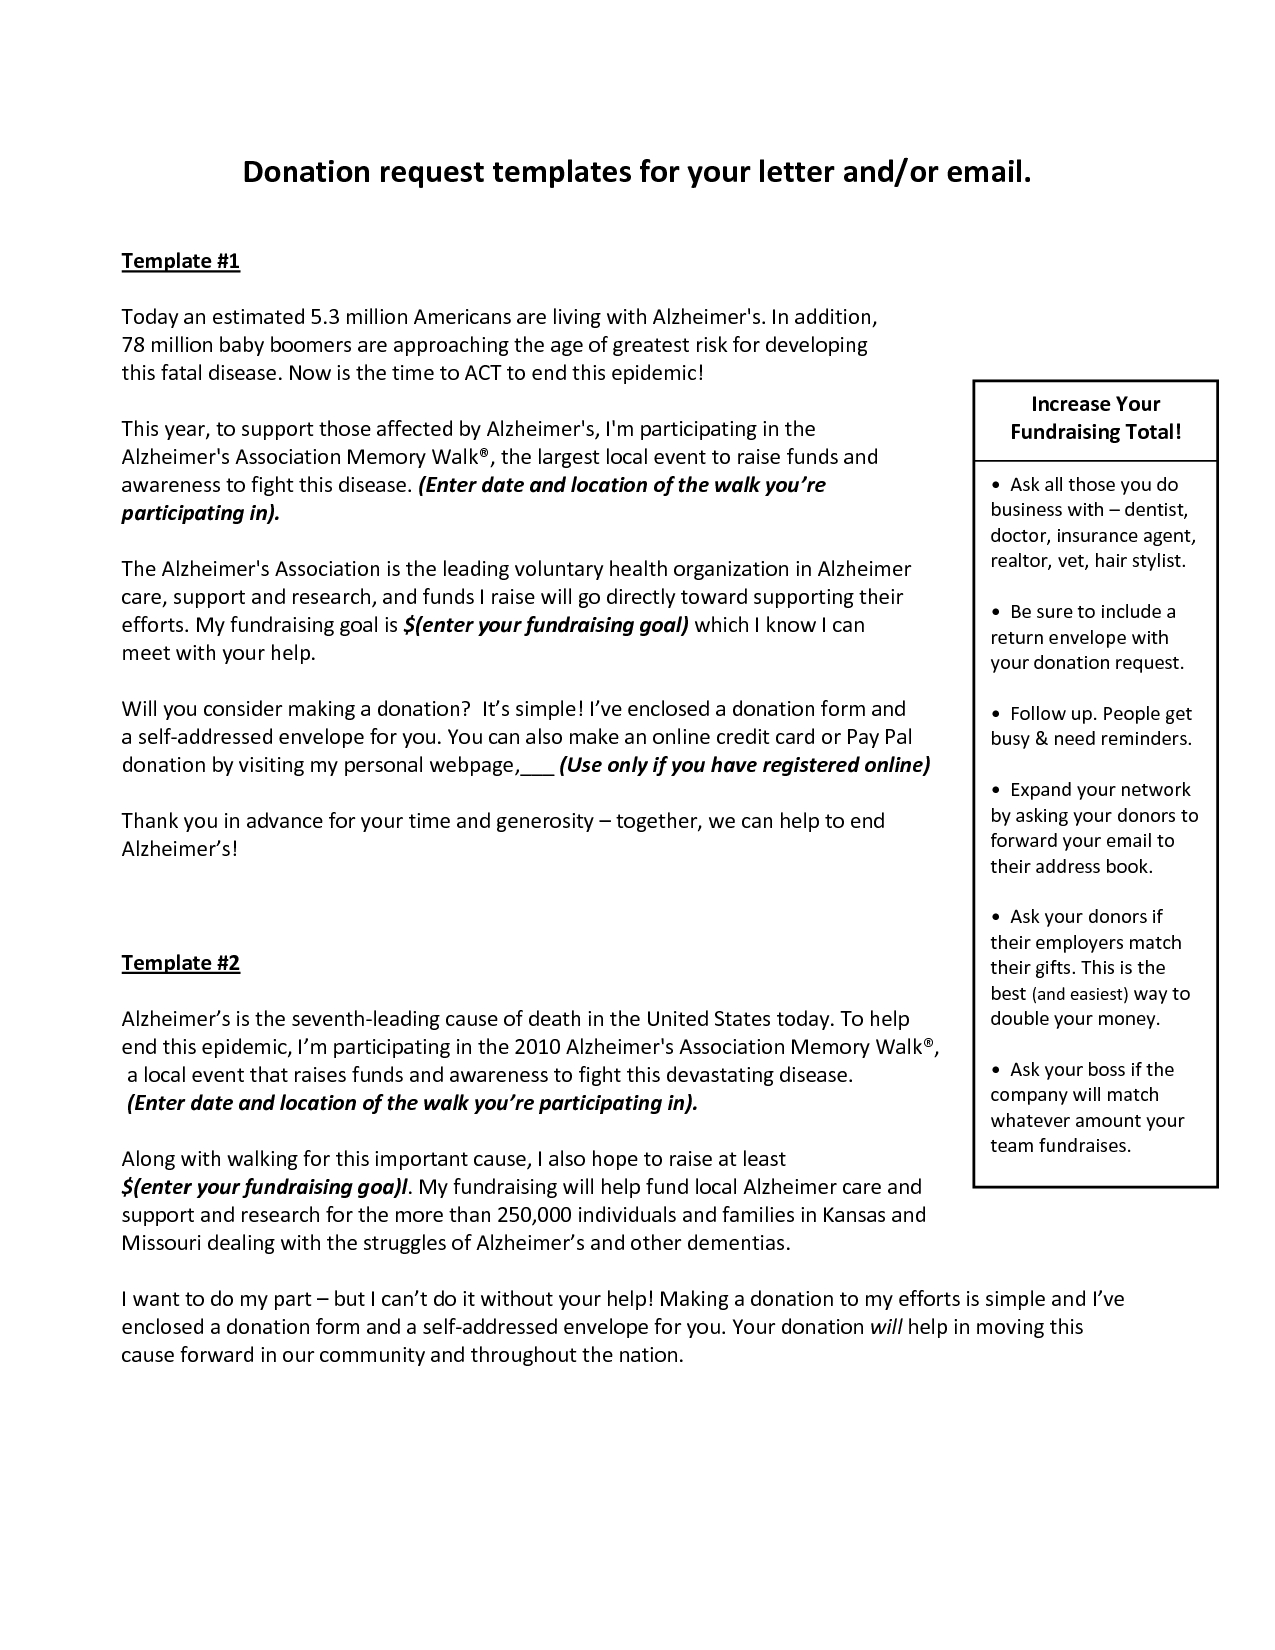 Charity Donation Request Letter Template - How to Write A solicitation Letter for Donations Choice Image